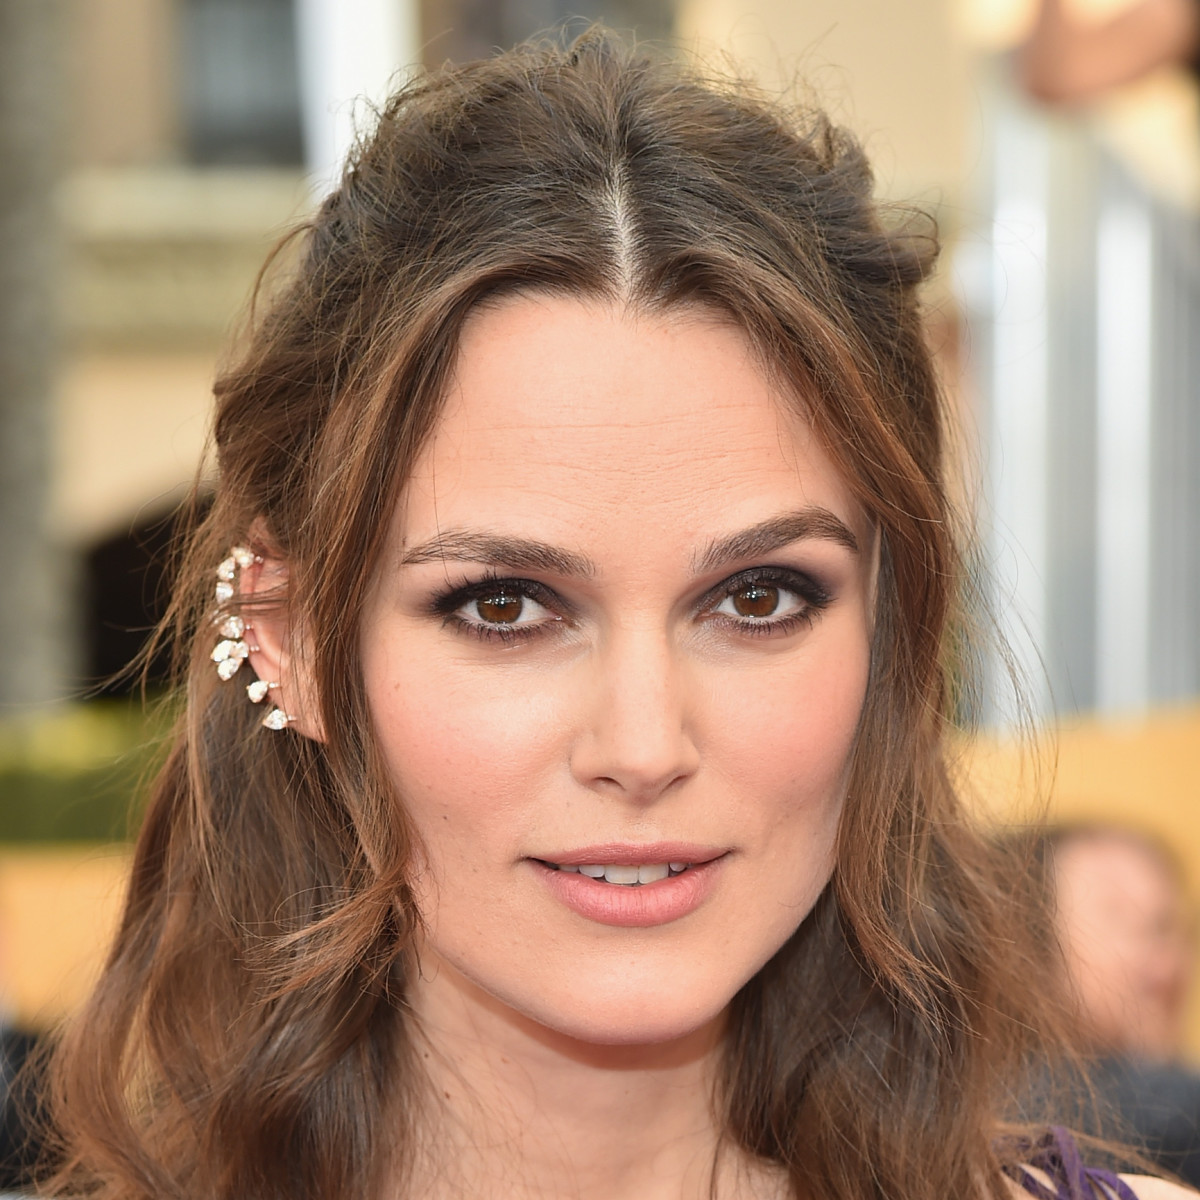 Keira Knightley - Film Actor, Actor - Biography.com Keira Knightley